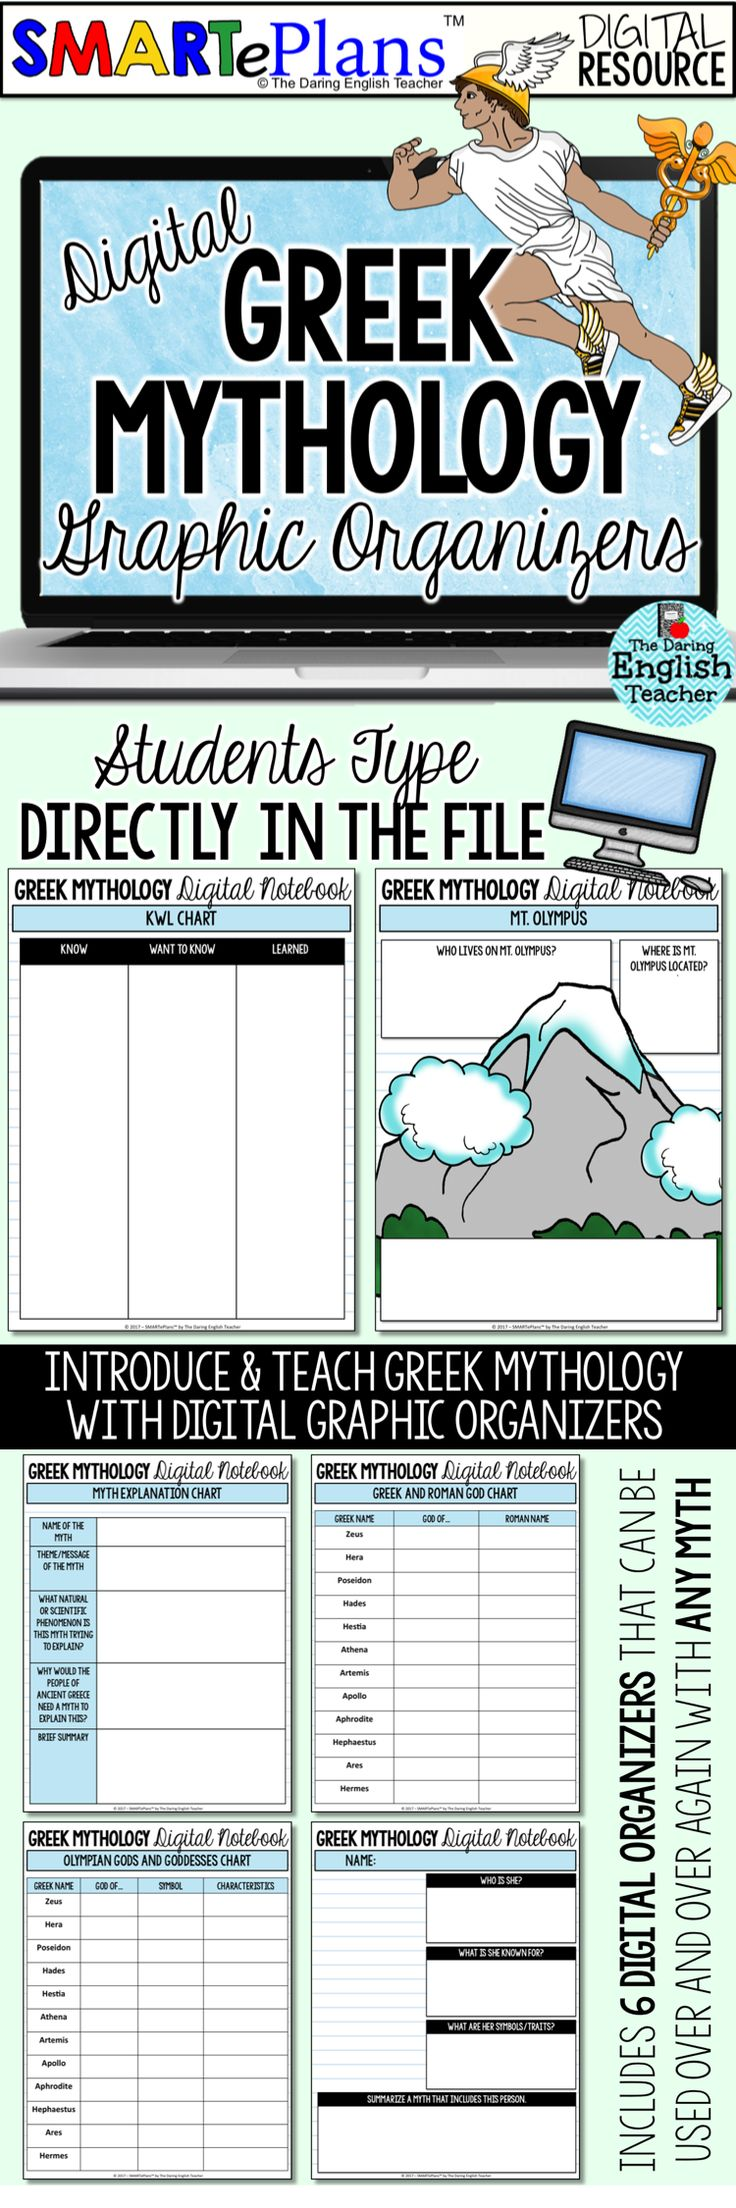 281 best literature lessons images on pinterest beds homework and go digital with greek mythology with these smarteplans digital greek mythology graphic organizers fandeluxe Gallery